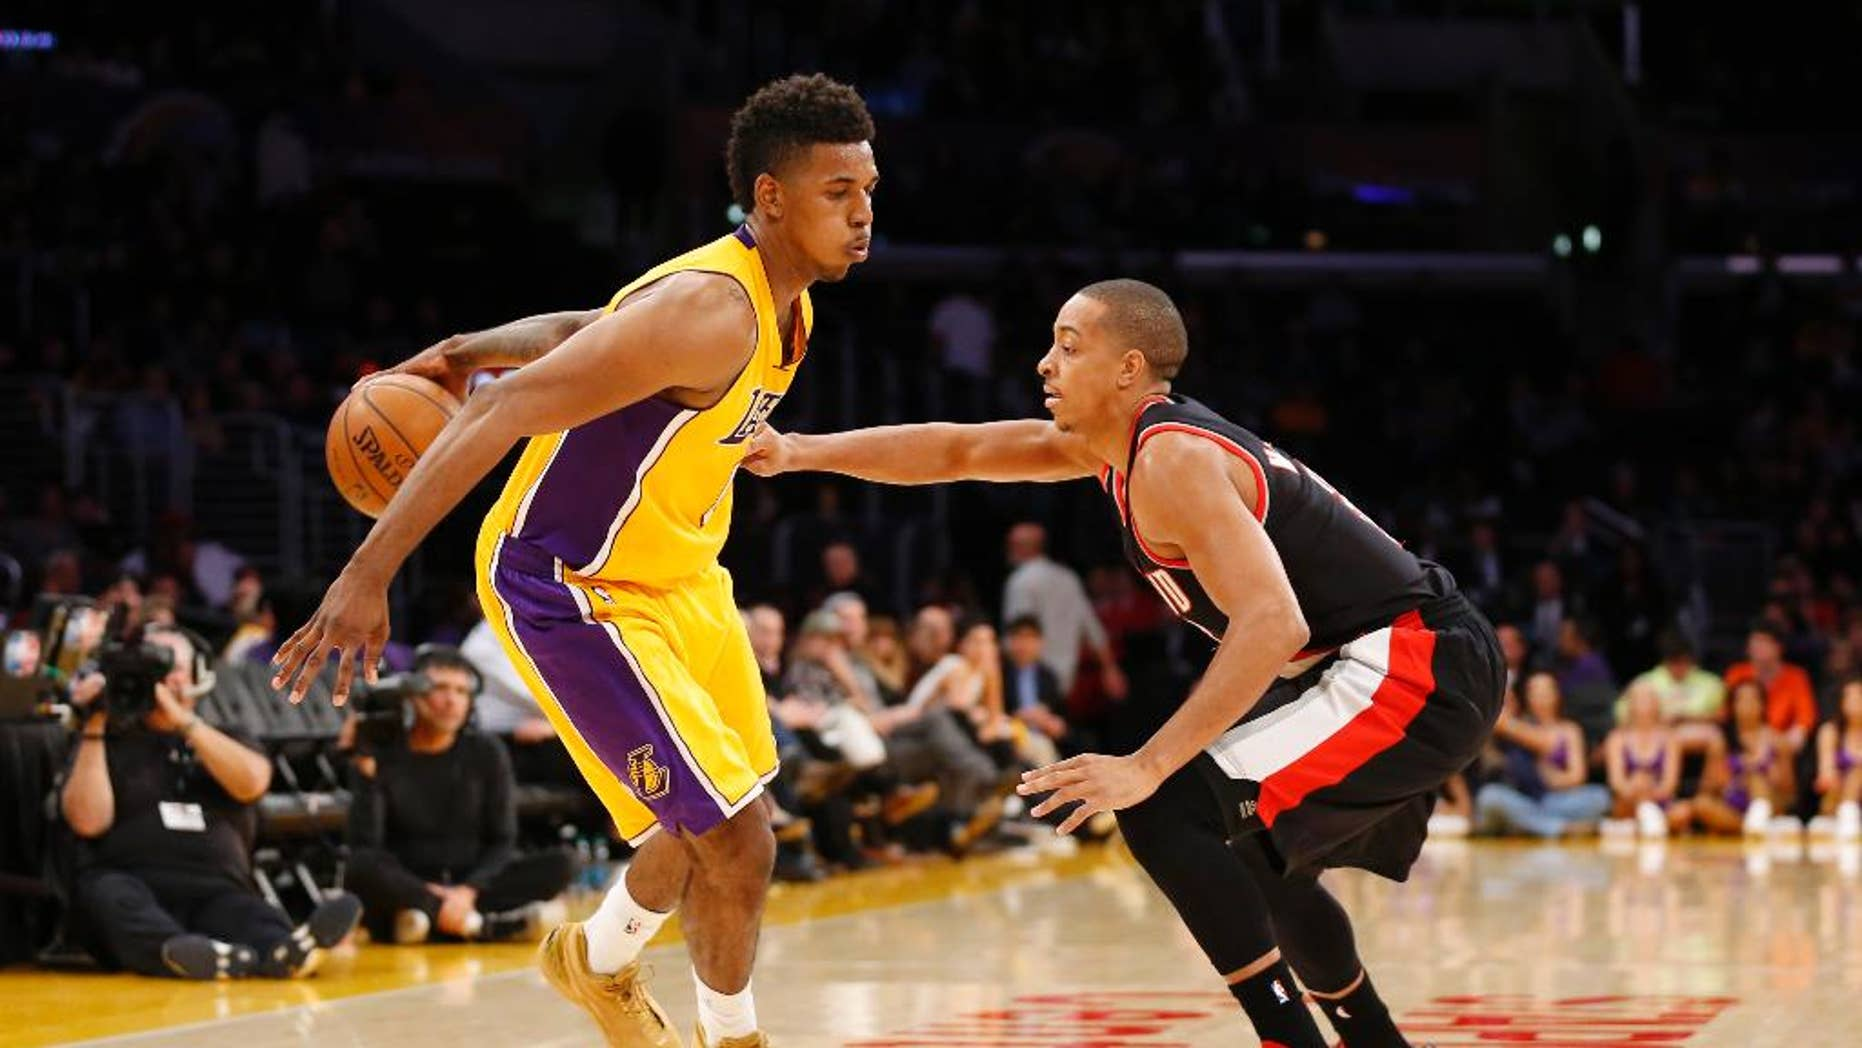 Los Angeles Lakers forward Nick Young dribbles behind his back as Portland Trail Blazers guard C.J. McCollum defends during the second half of an NBA basketball game in Los Angeles, Tuesday, April 1, 2014. The Trail Blazers won 124-112. (AP Photo/Danny Moloshok)